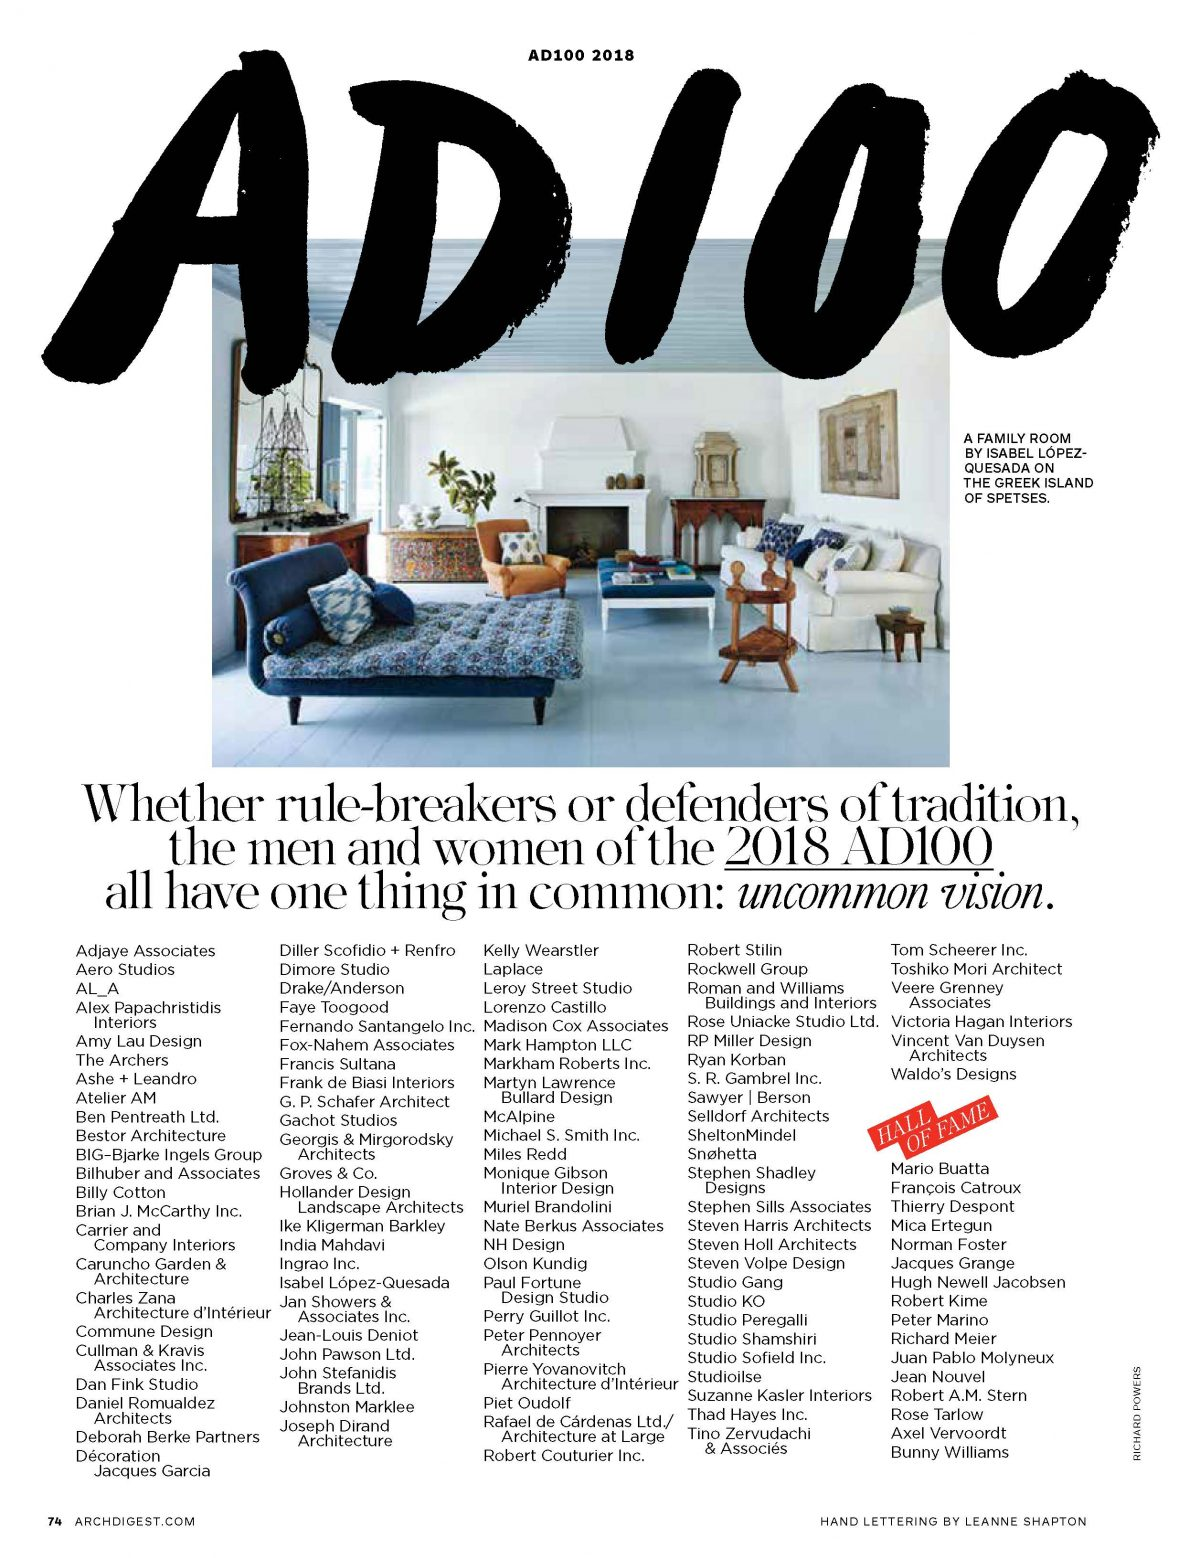 Architectural Digest – Hollander Design on AD100 Top Designers List